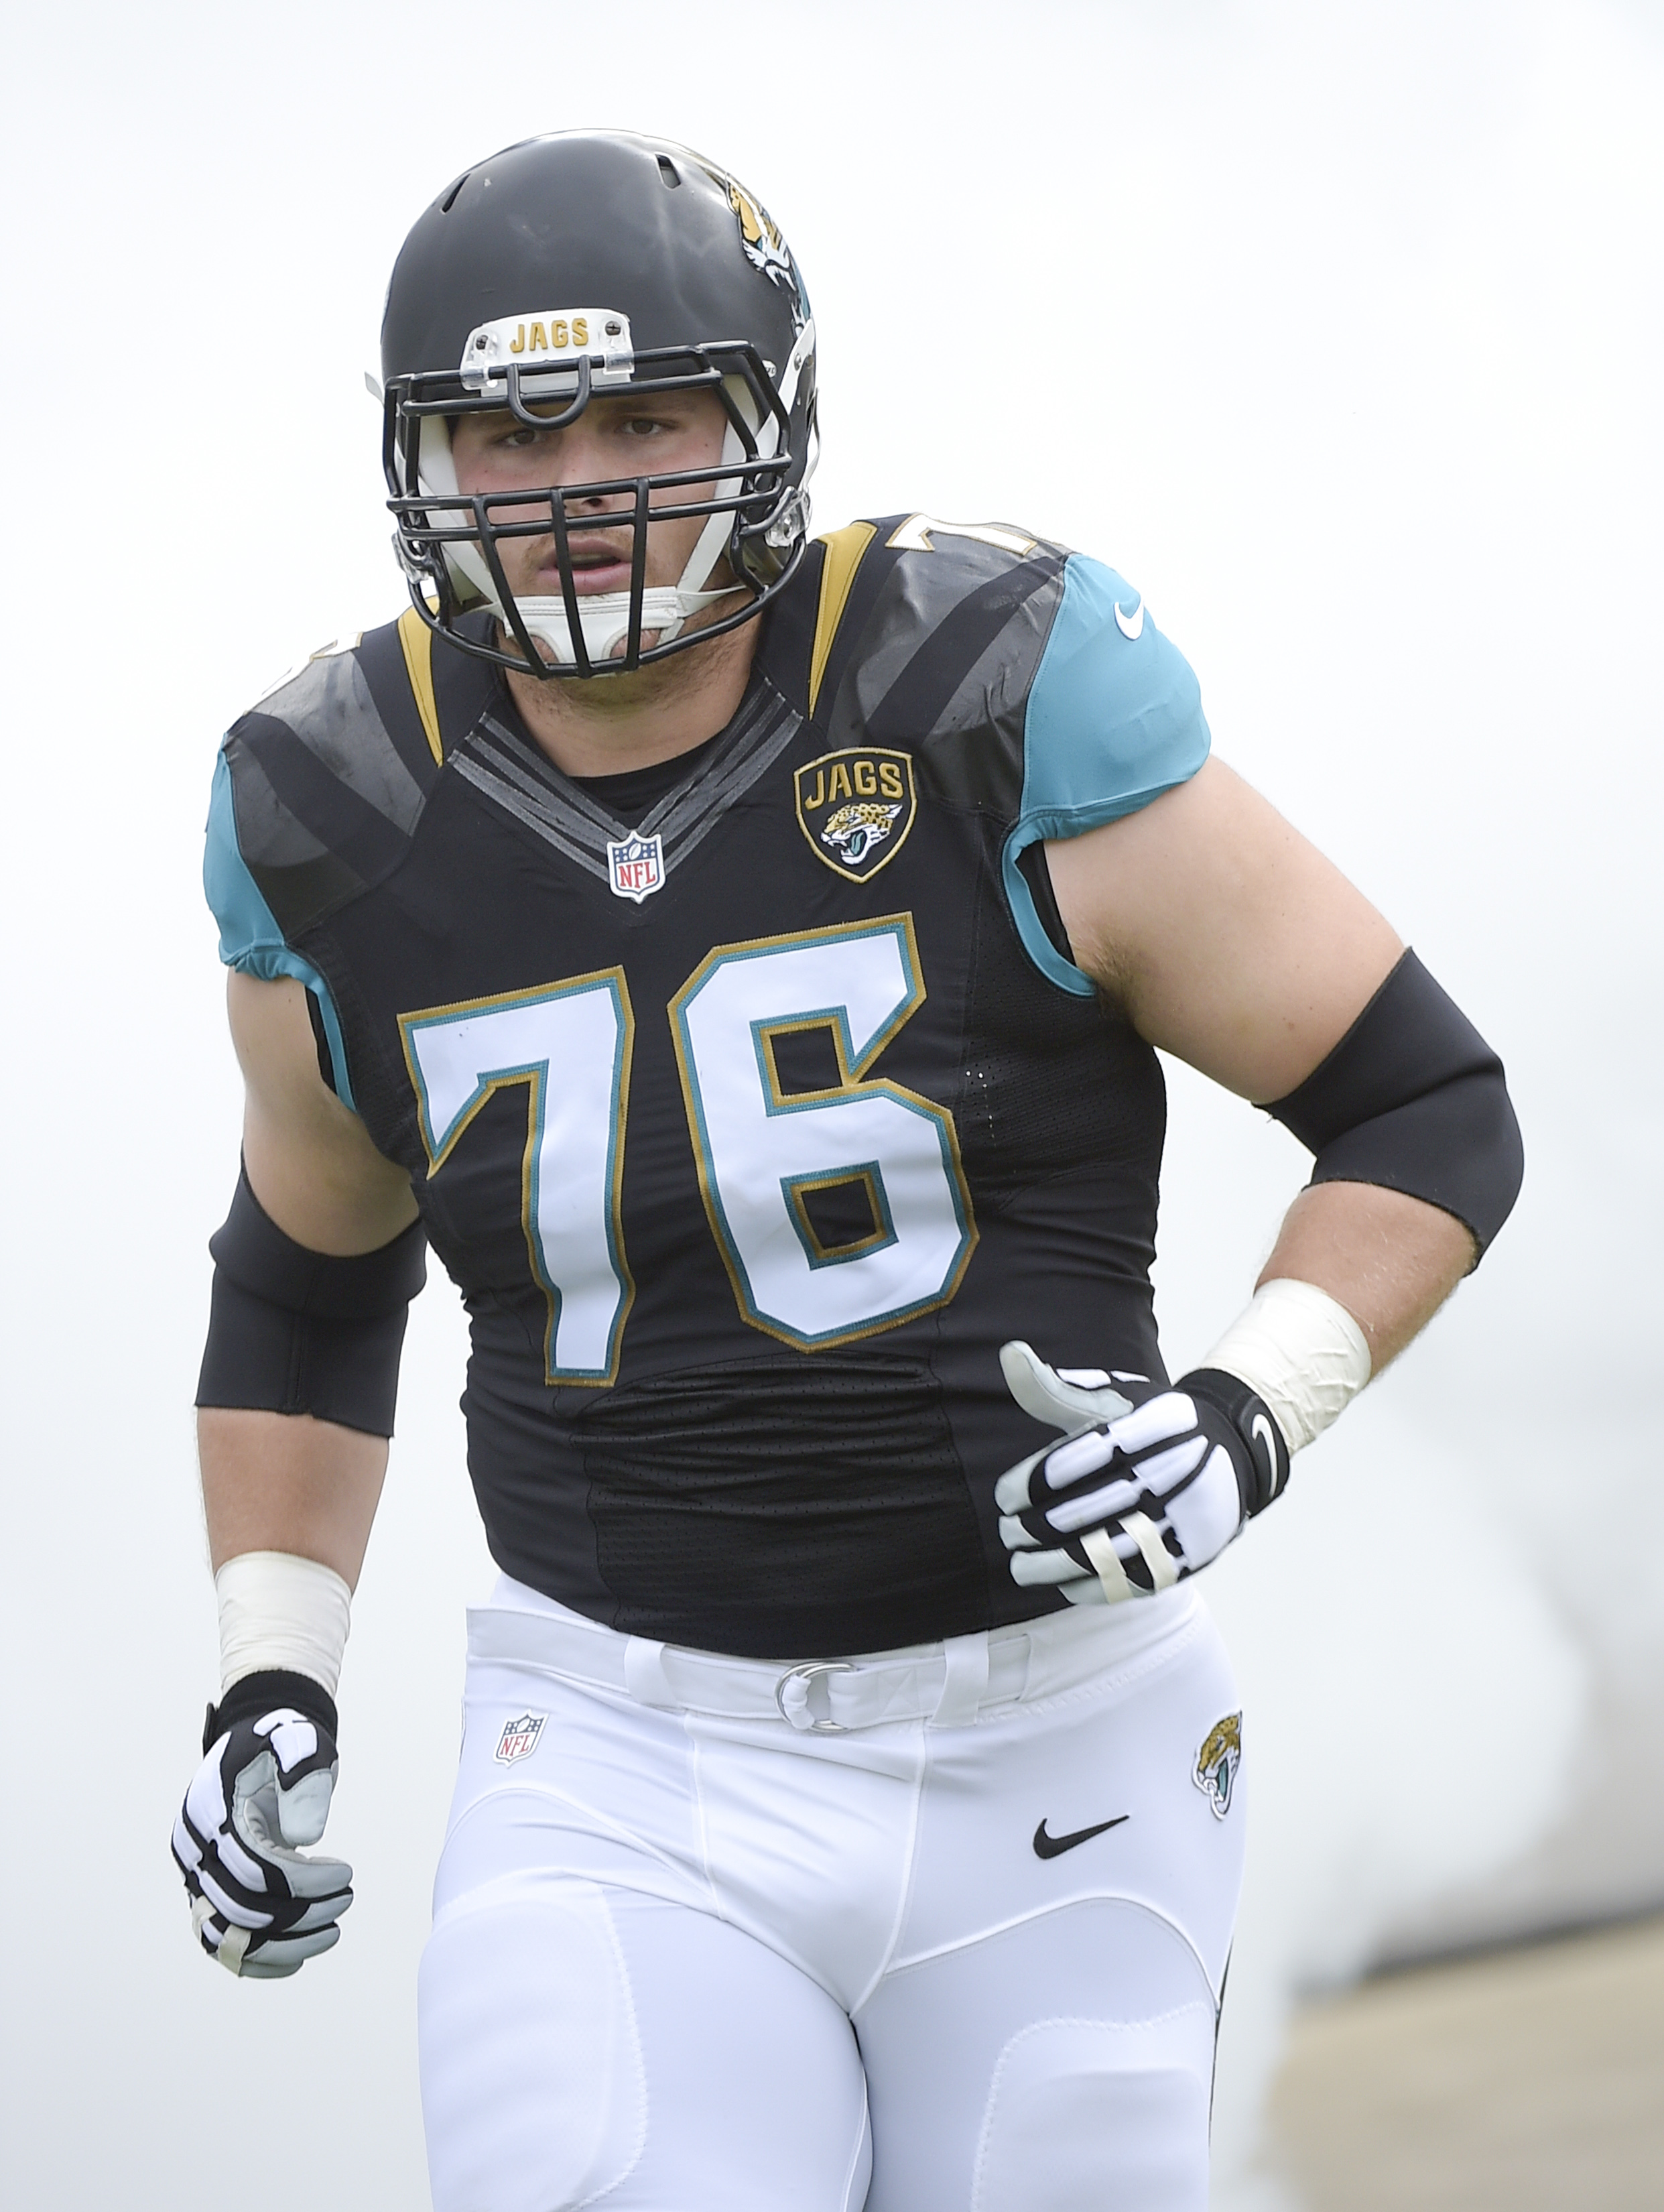 Jacksonville Jaguars tackle Luke Joeckel (76) takes the field before the first half of an NFL football game against the Indianapolis Colts in Jacksonville, Fla., Sunday, Dec. 13, 2015.(AP Photo/Phelan M. Ebenhack)